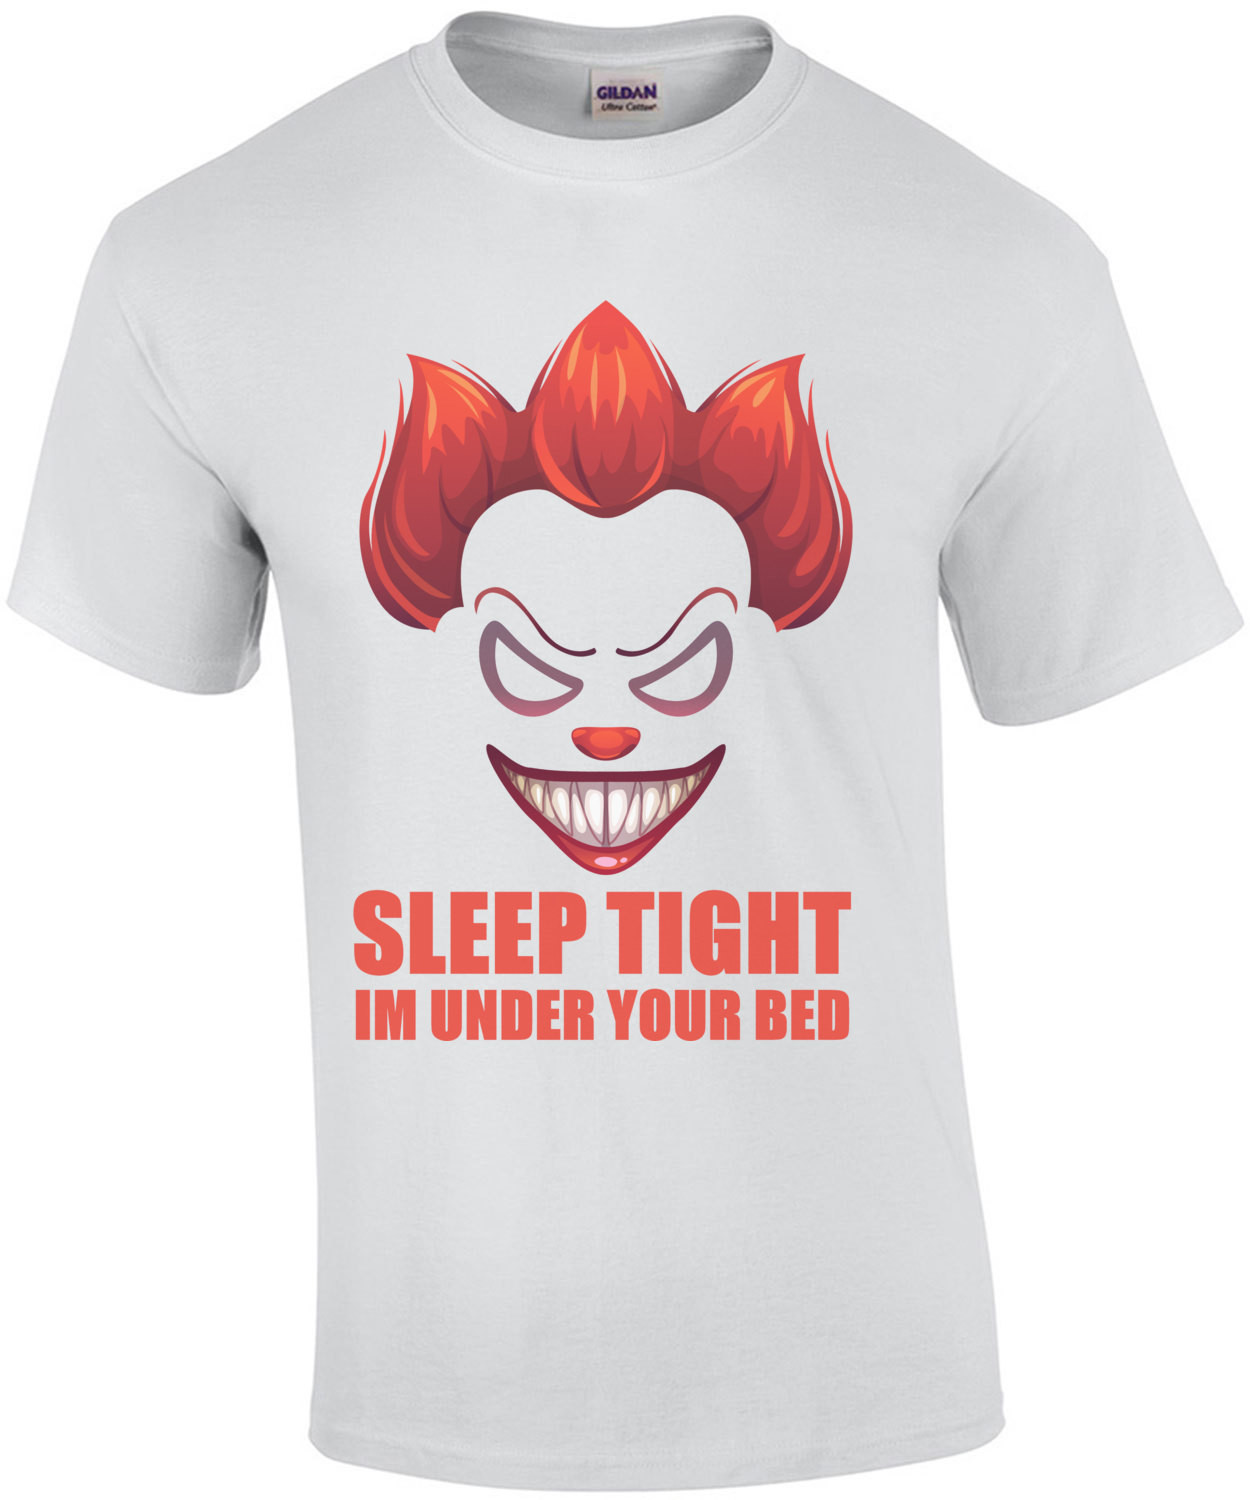 Sleep Tight - I'm under your bed - clown t-shirt